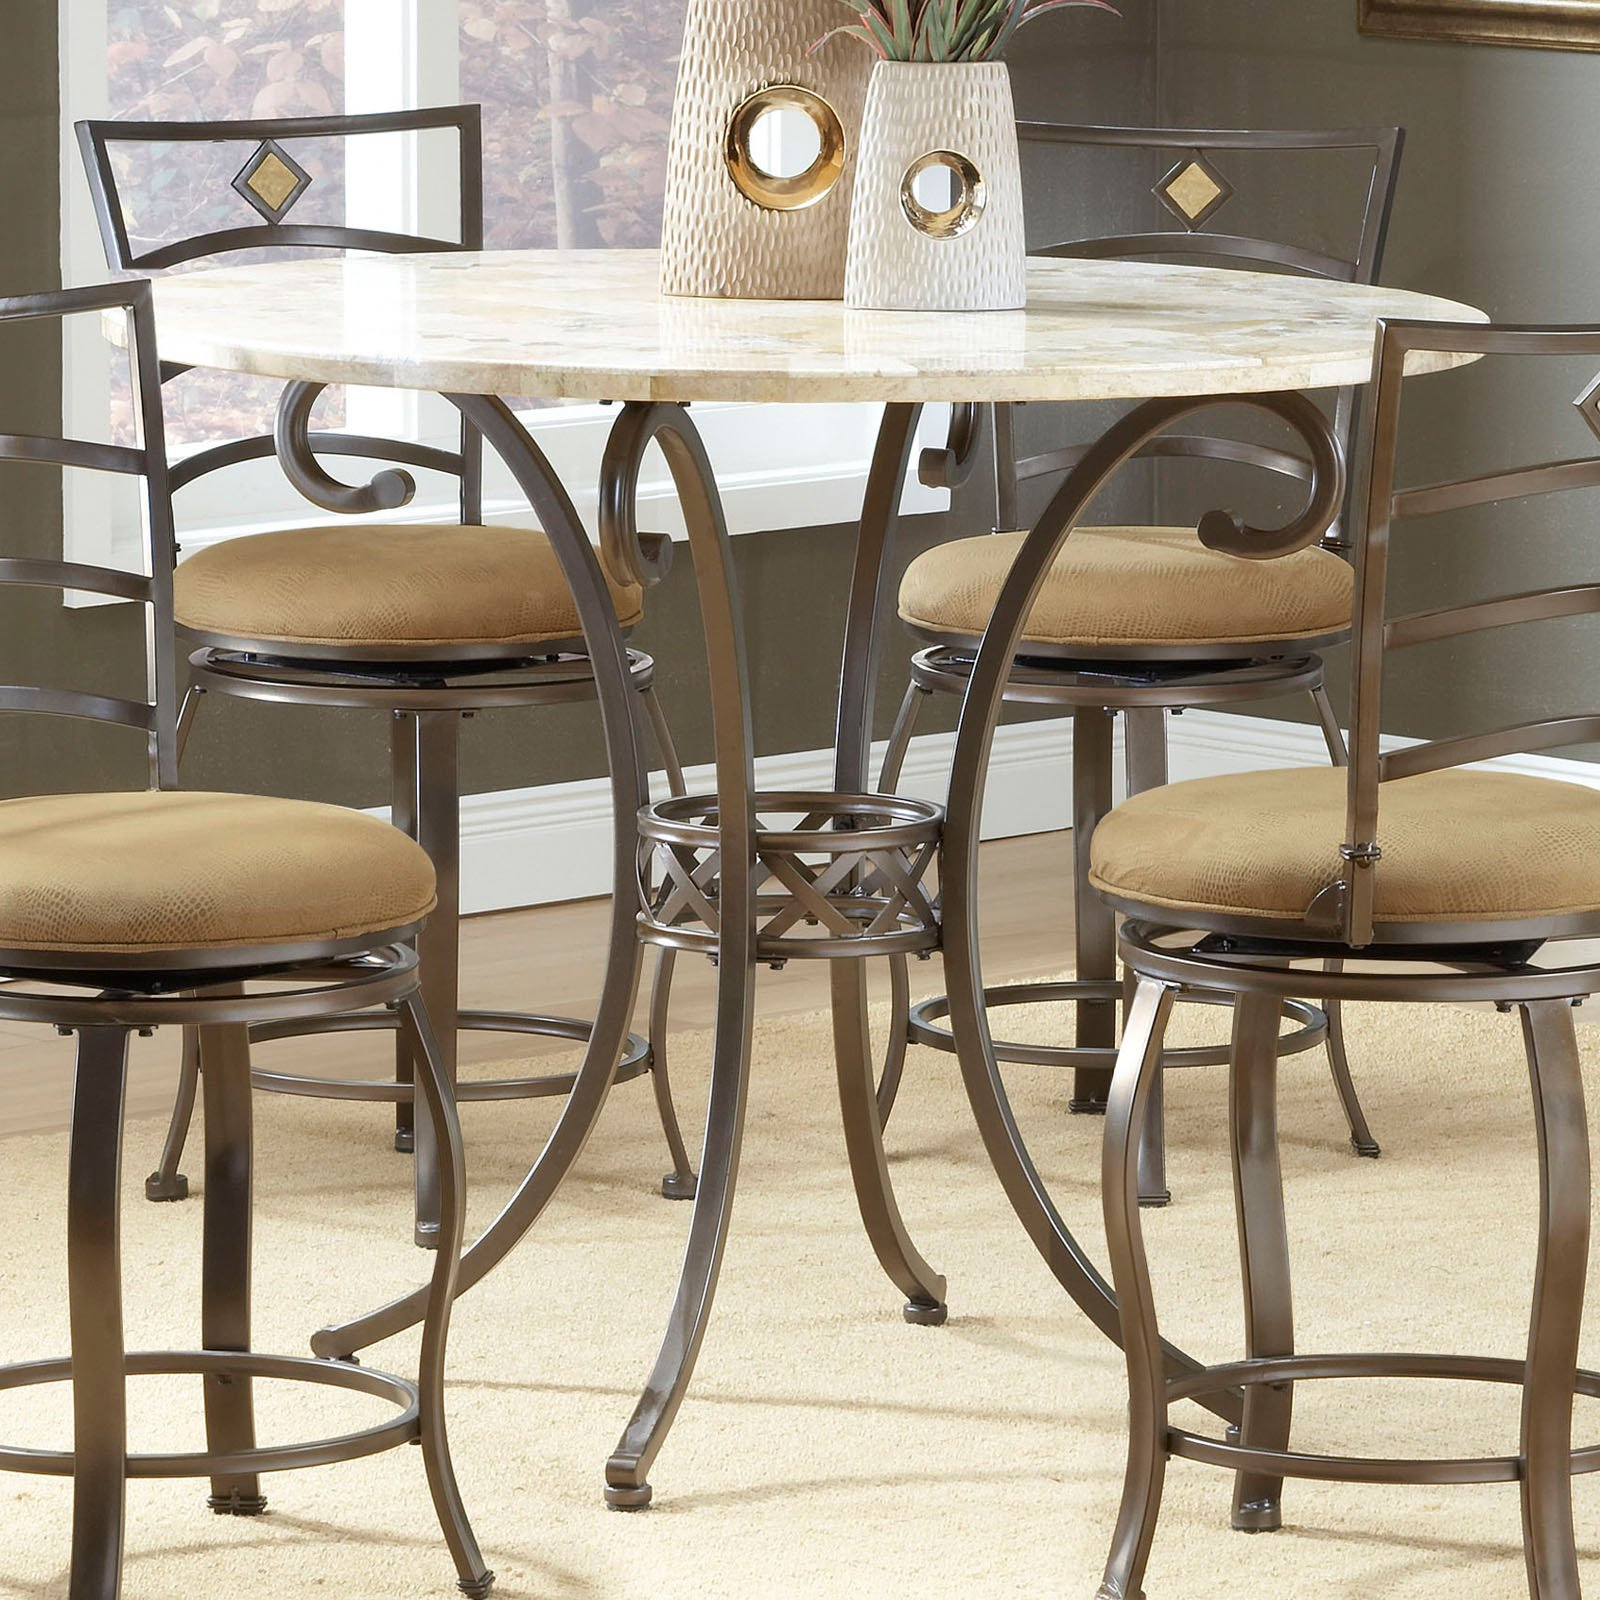 Hilale Brookside 45 Inch Diameter Counter Height Round Dining Table Brown Powder Coat